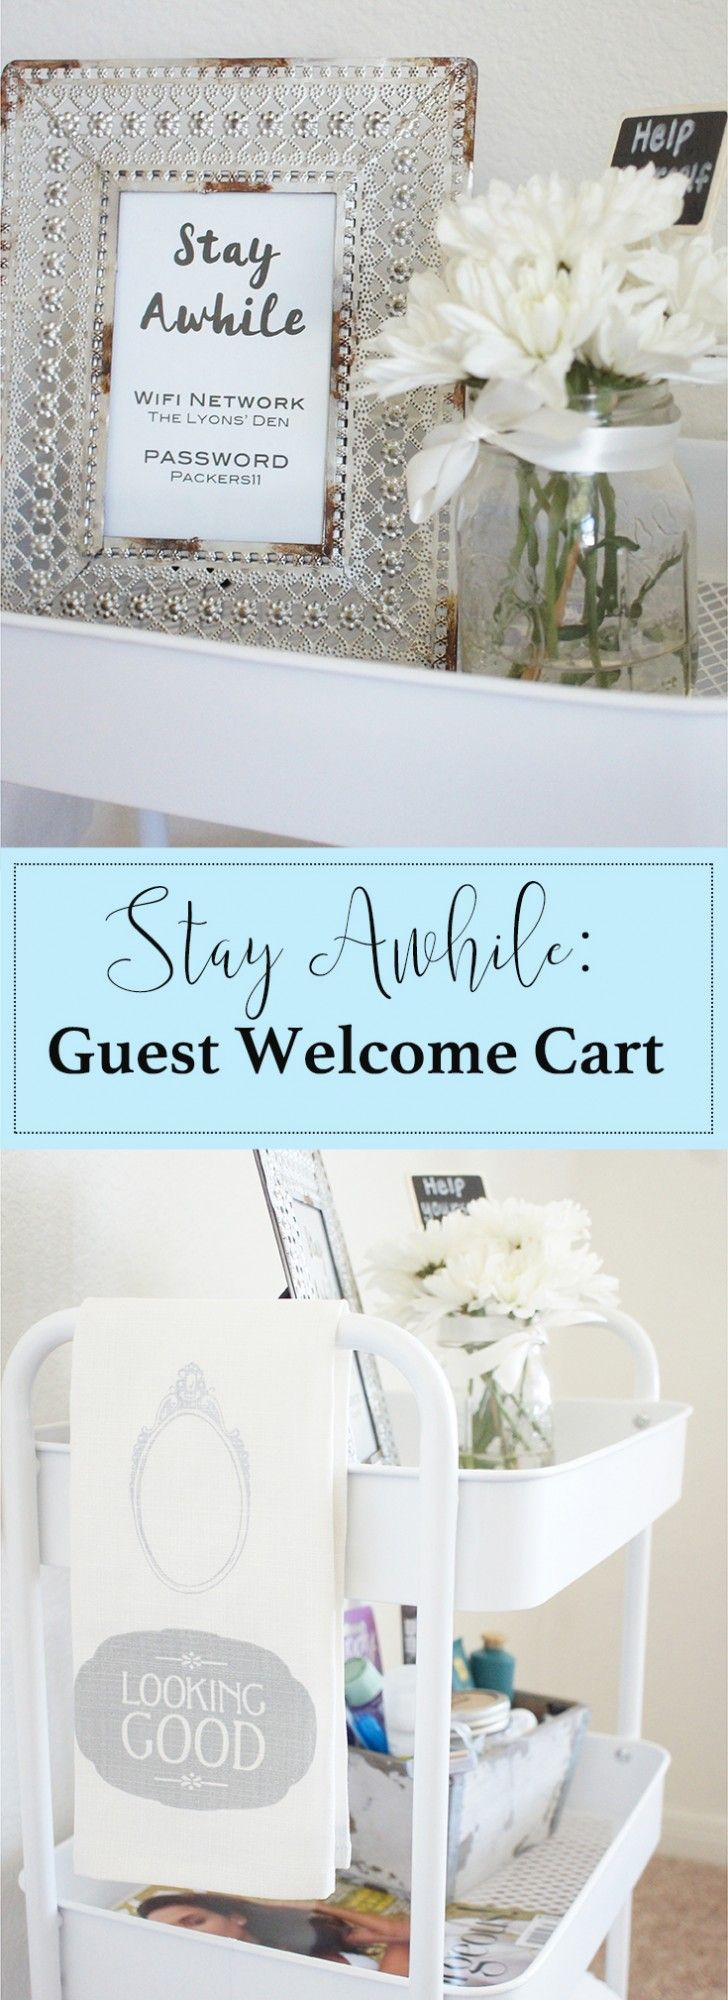 Craftaholics Anonymous®   Stay Awhile: Guest Hospitality Cart